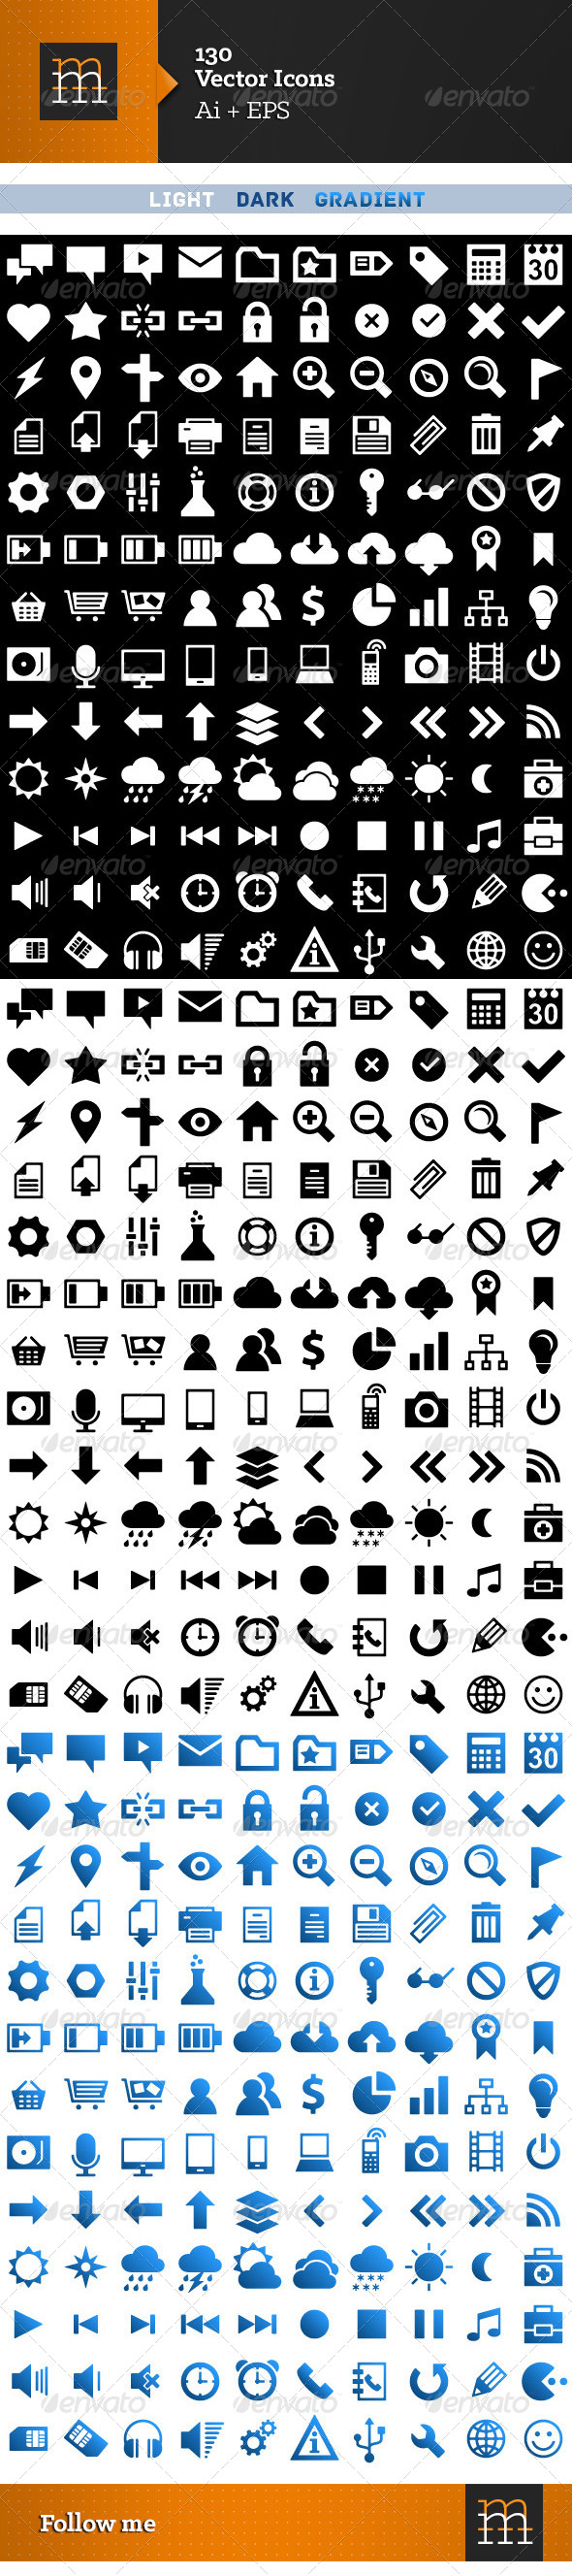 130 Vector Icons - Software Icons